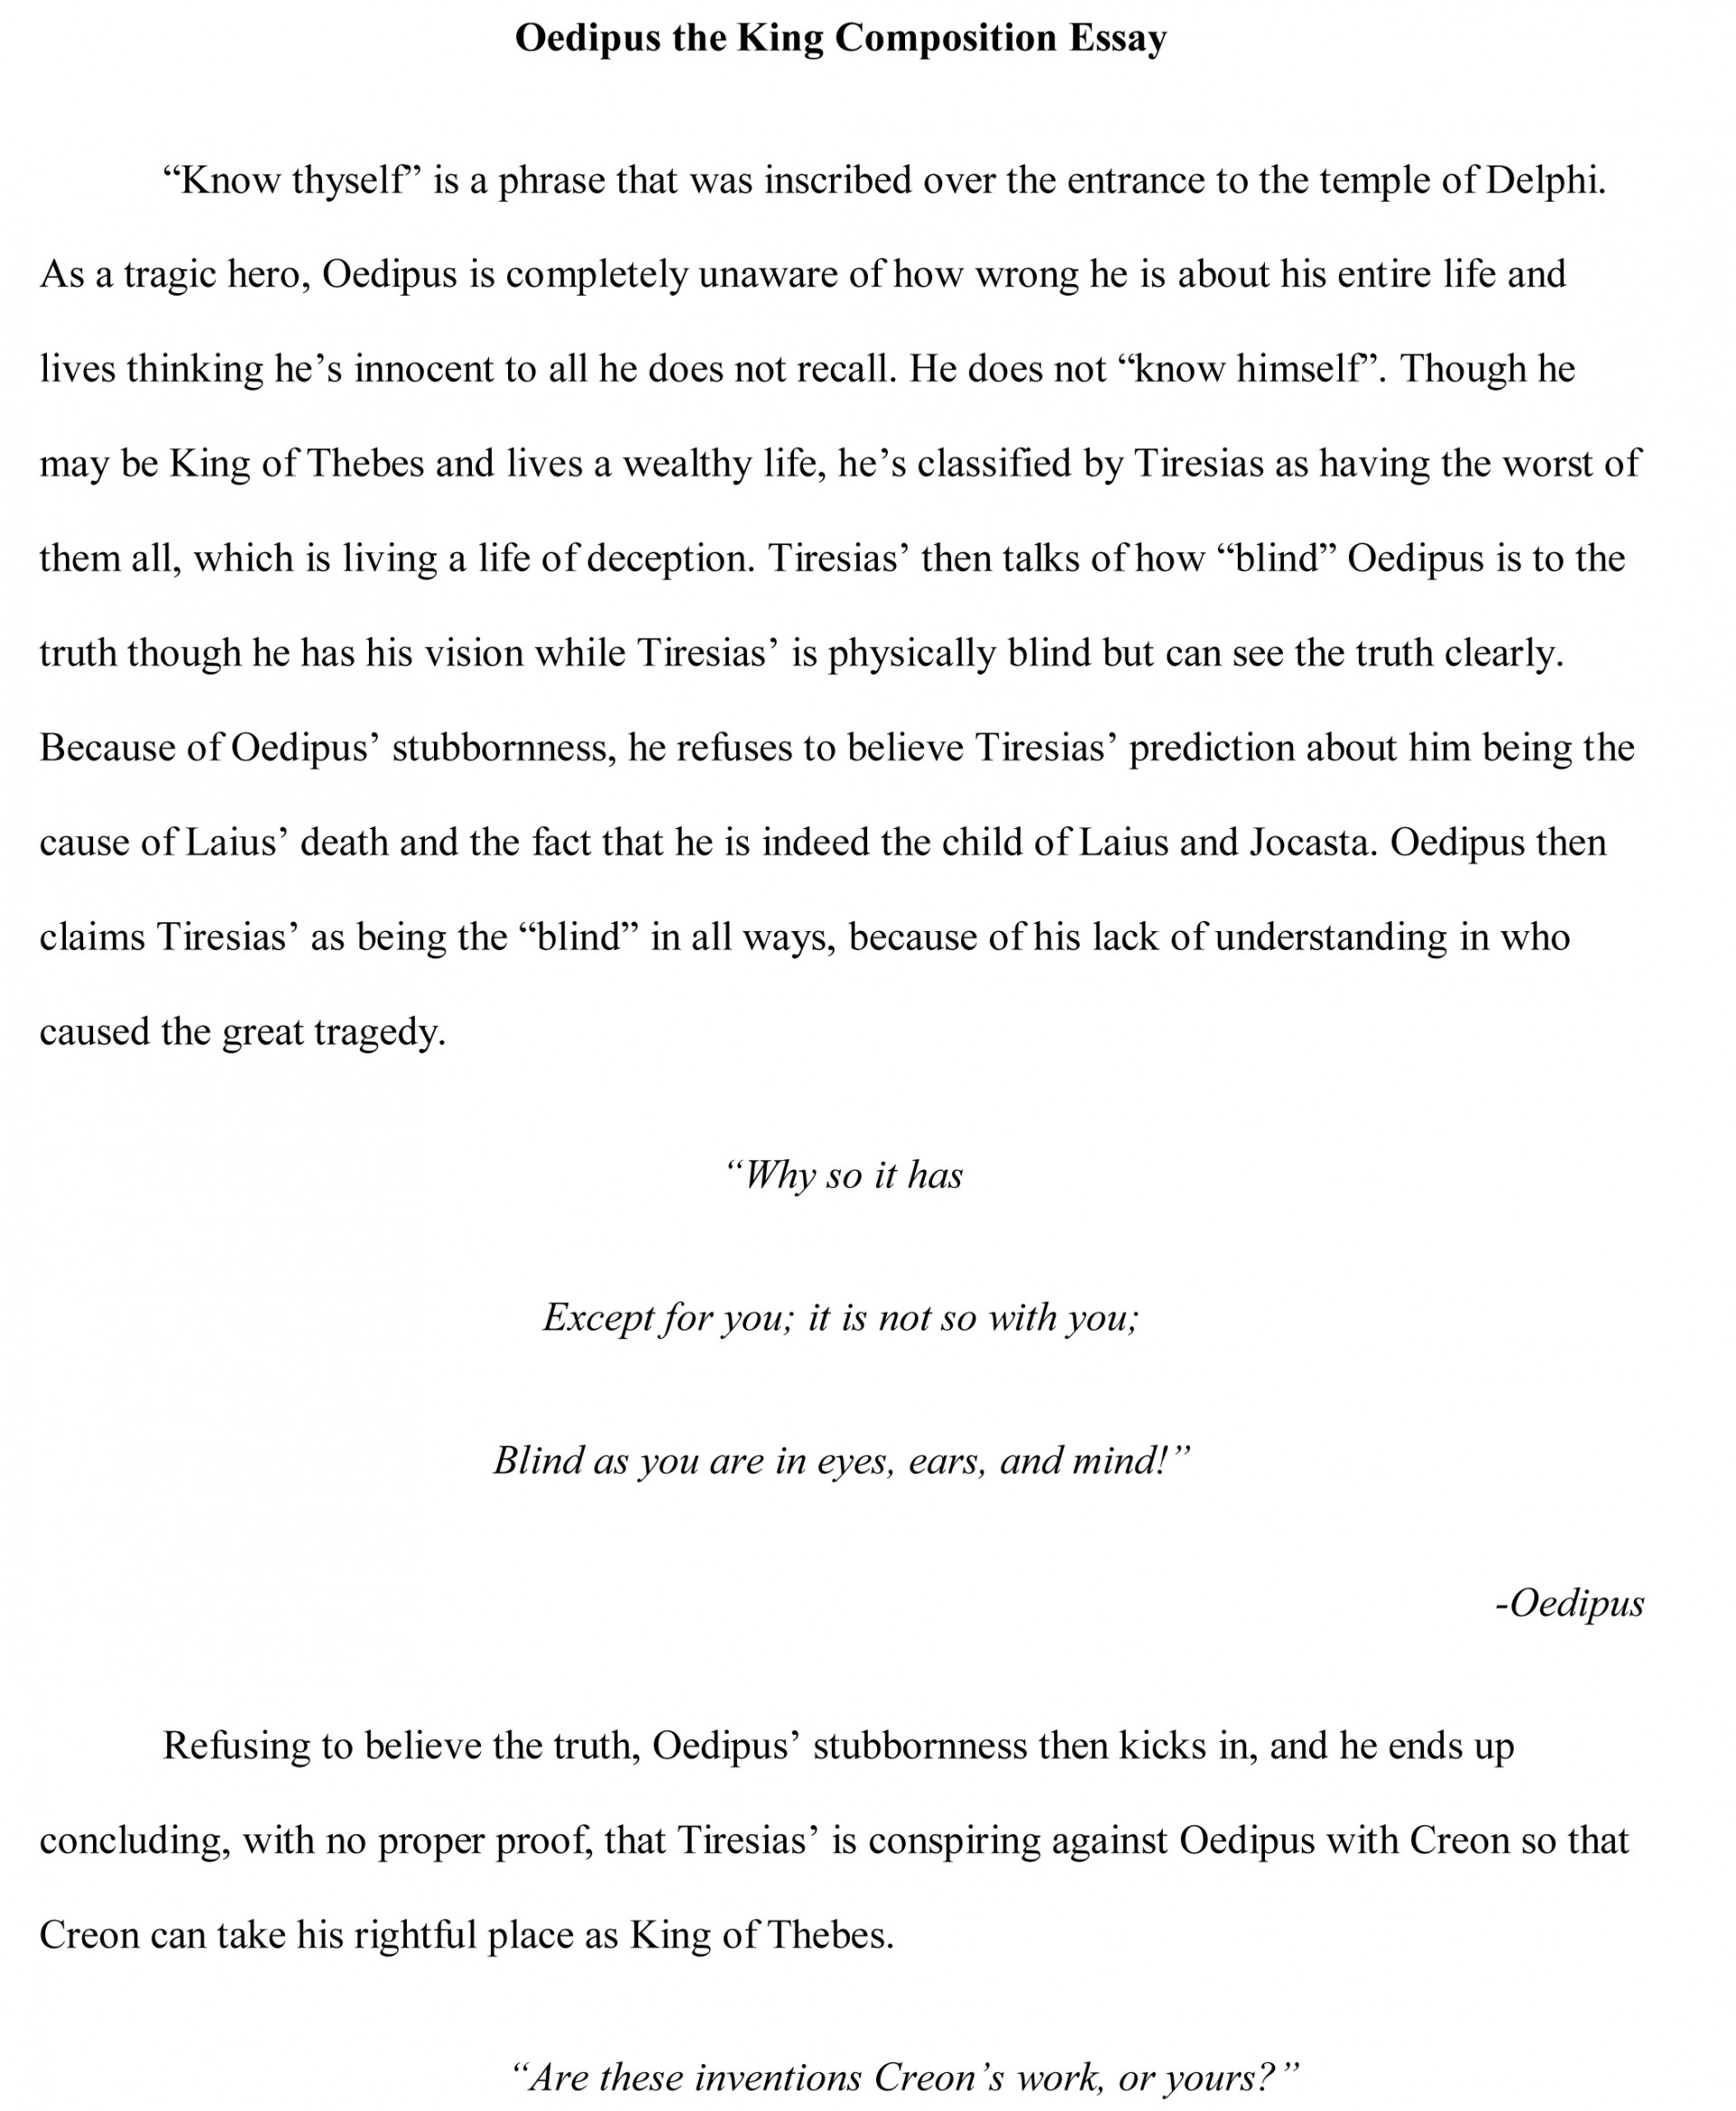 011 Oedipus Essay Free Sample Good Hooks For Essayss Excellent Essays Examples College Of Expository 1920